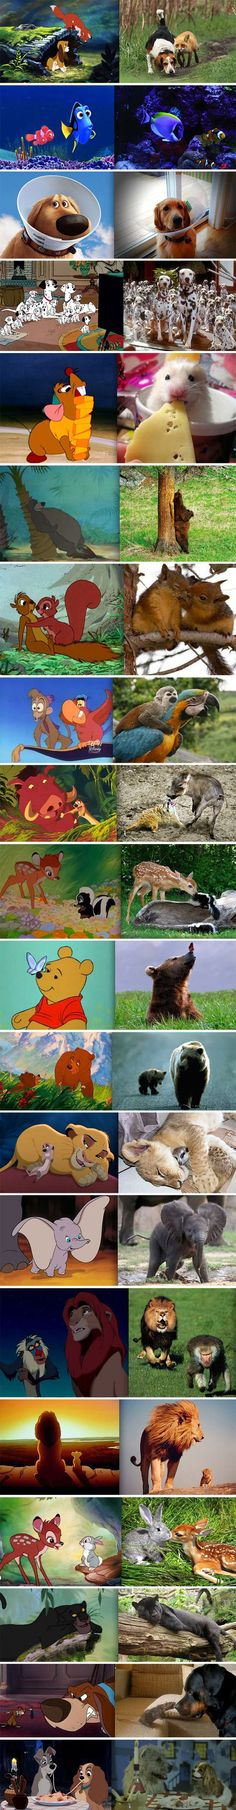 Classic Disney movies turned into reality.